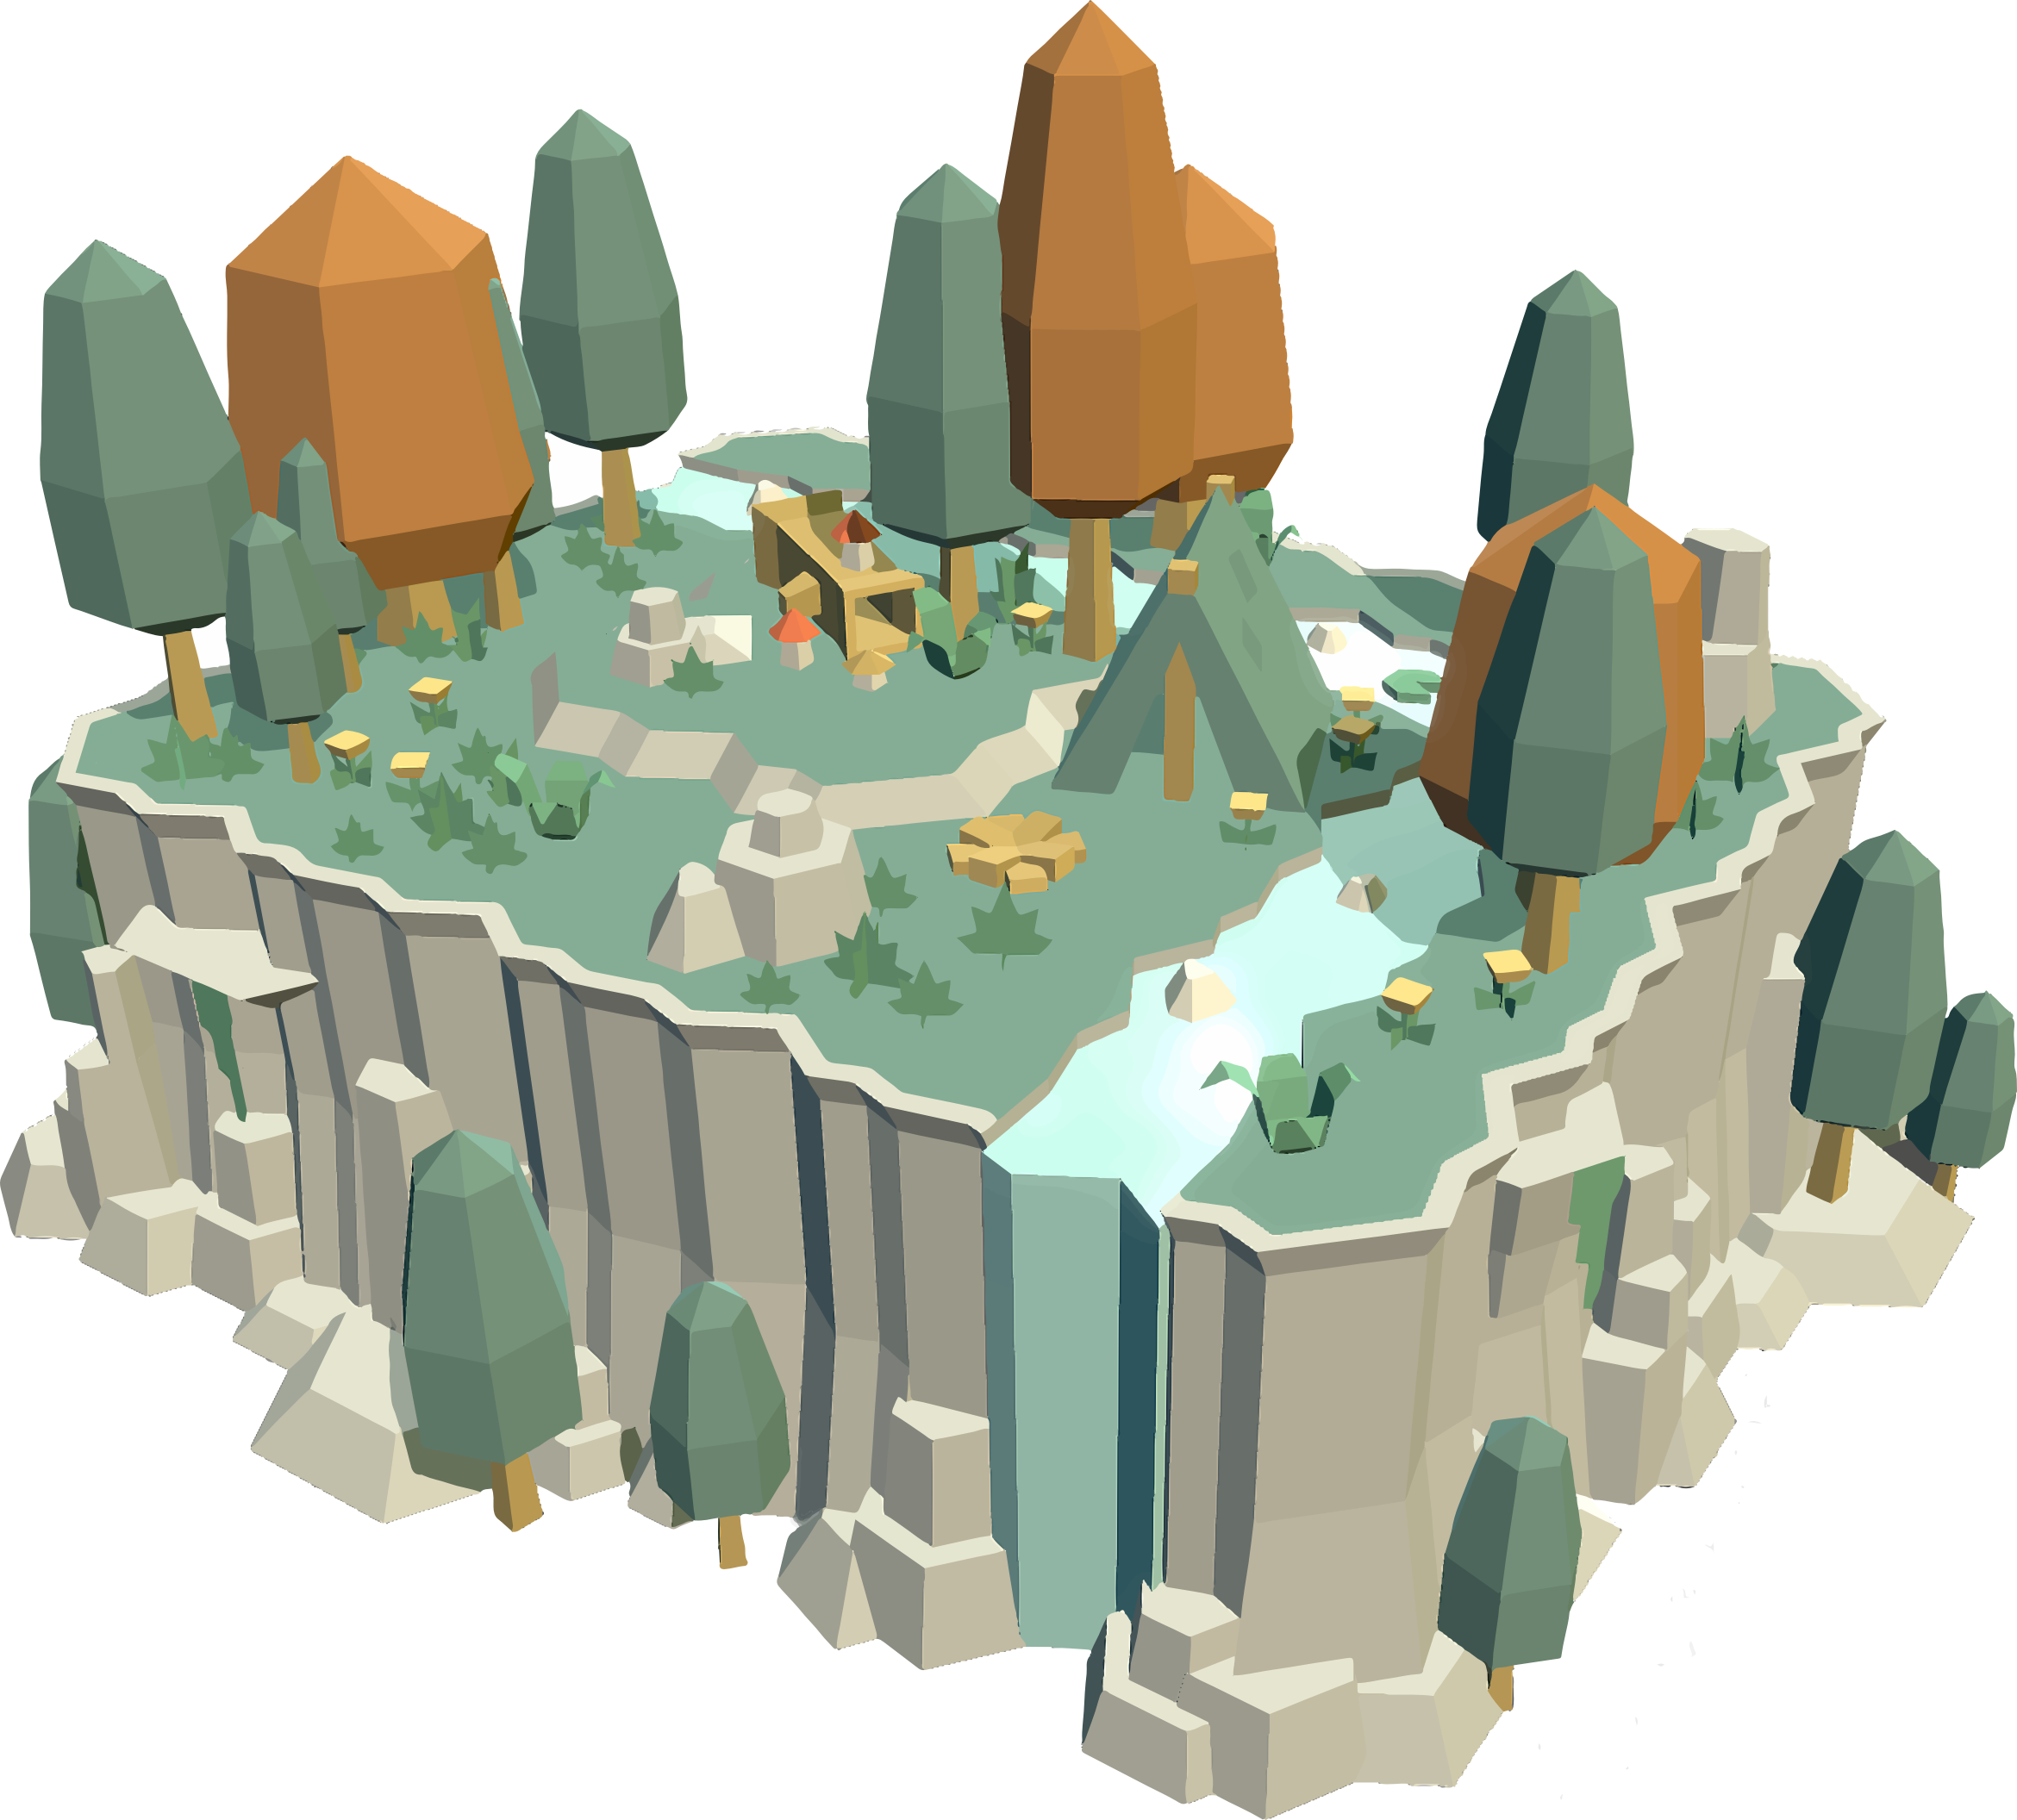 3D Low Poly Nature Scene by GDJ